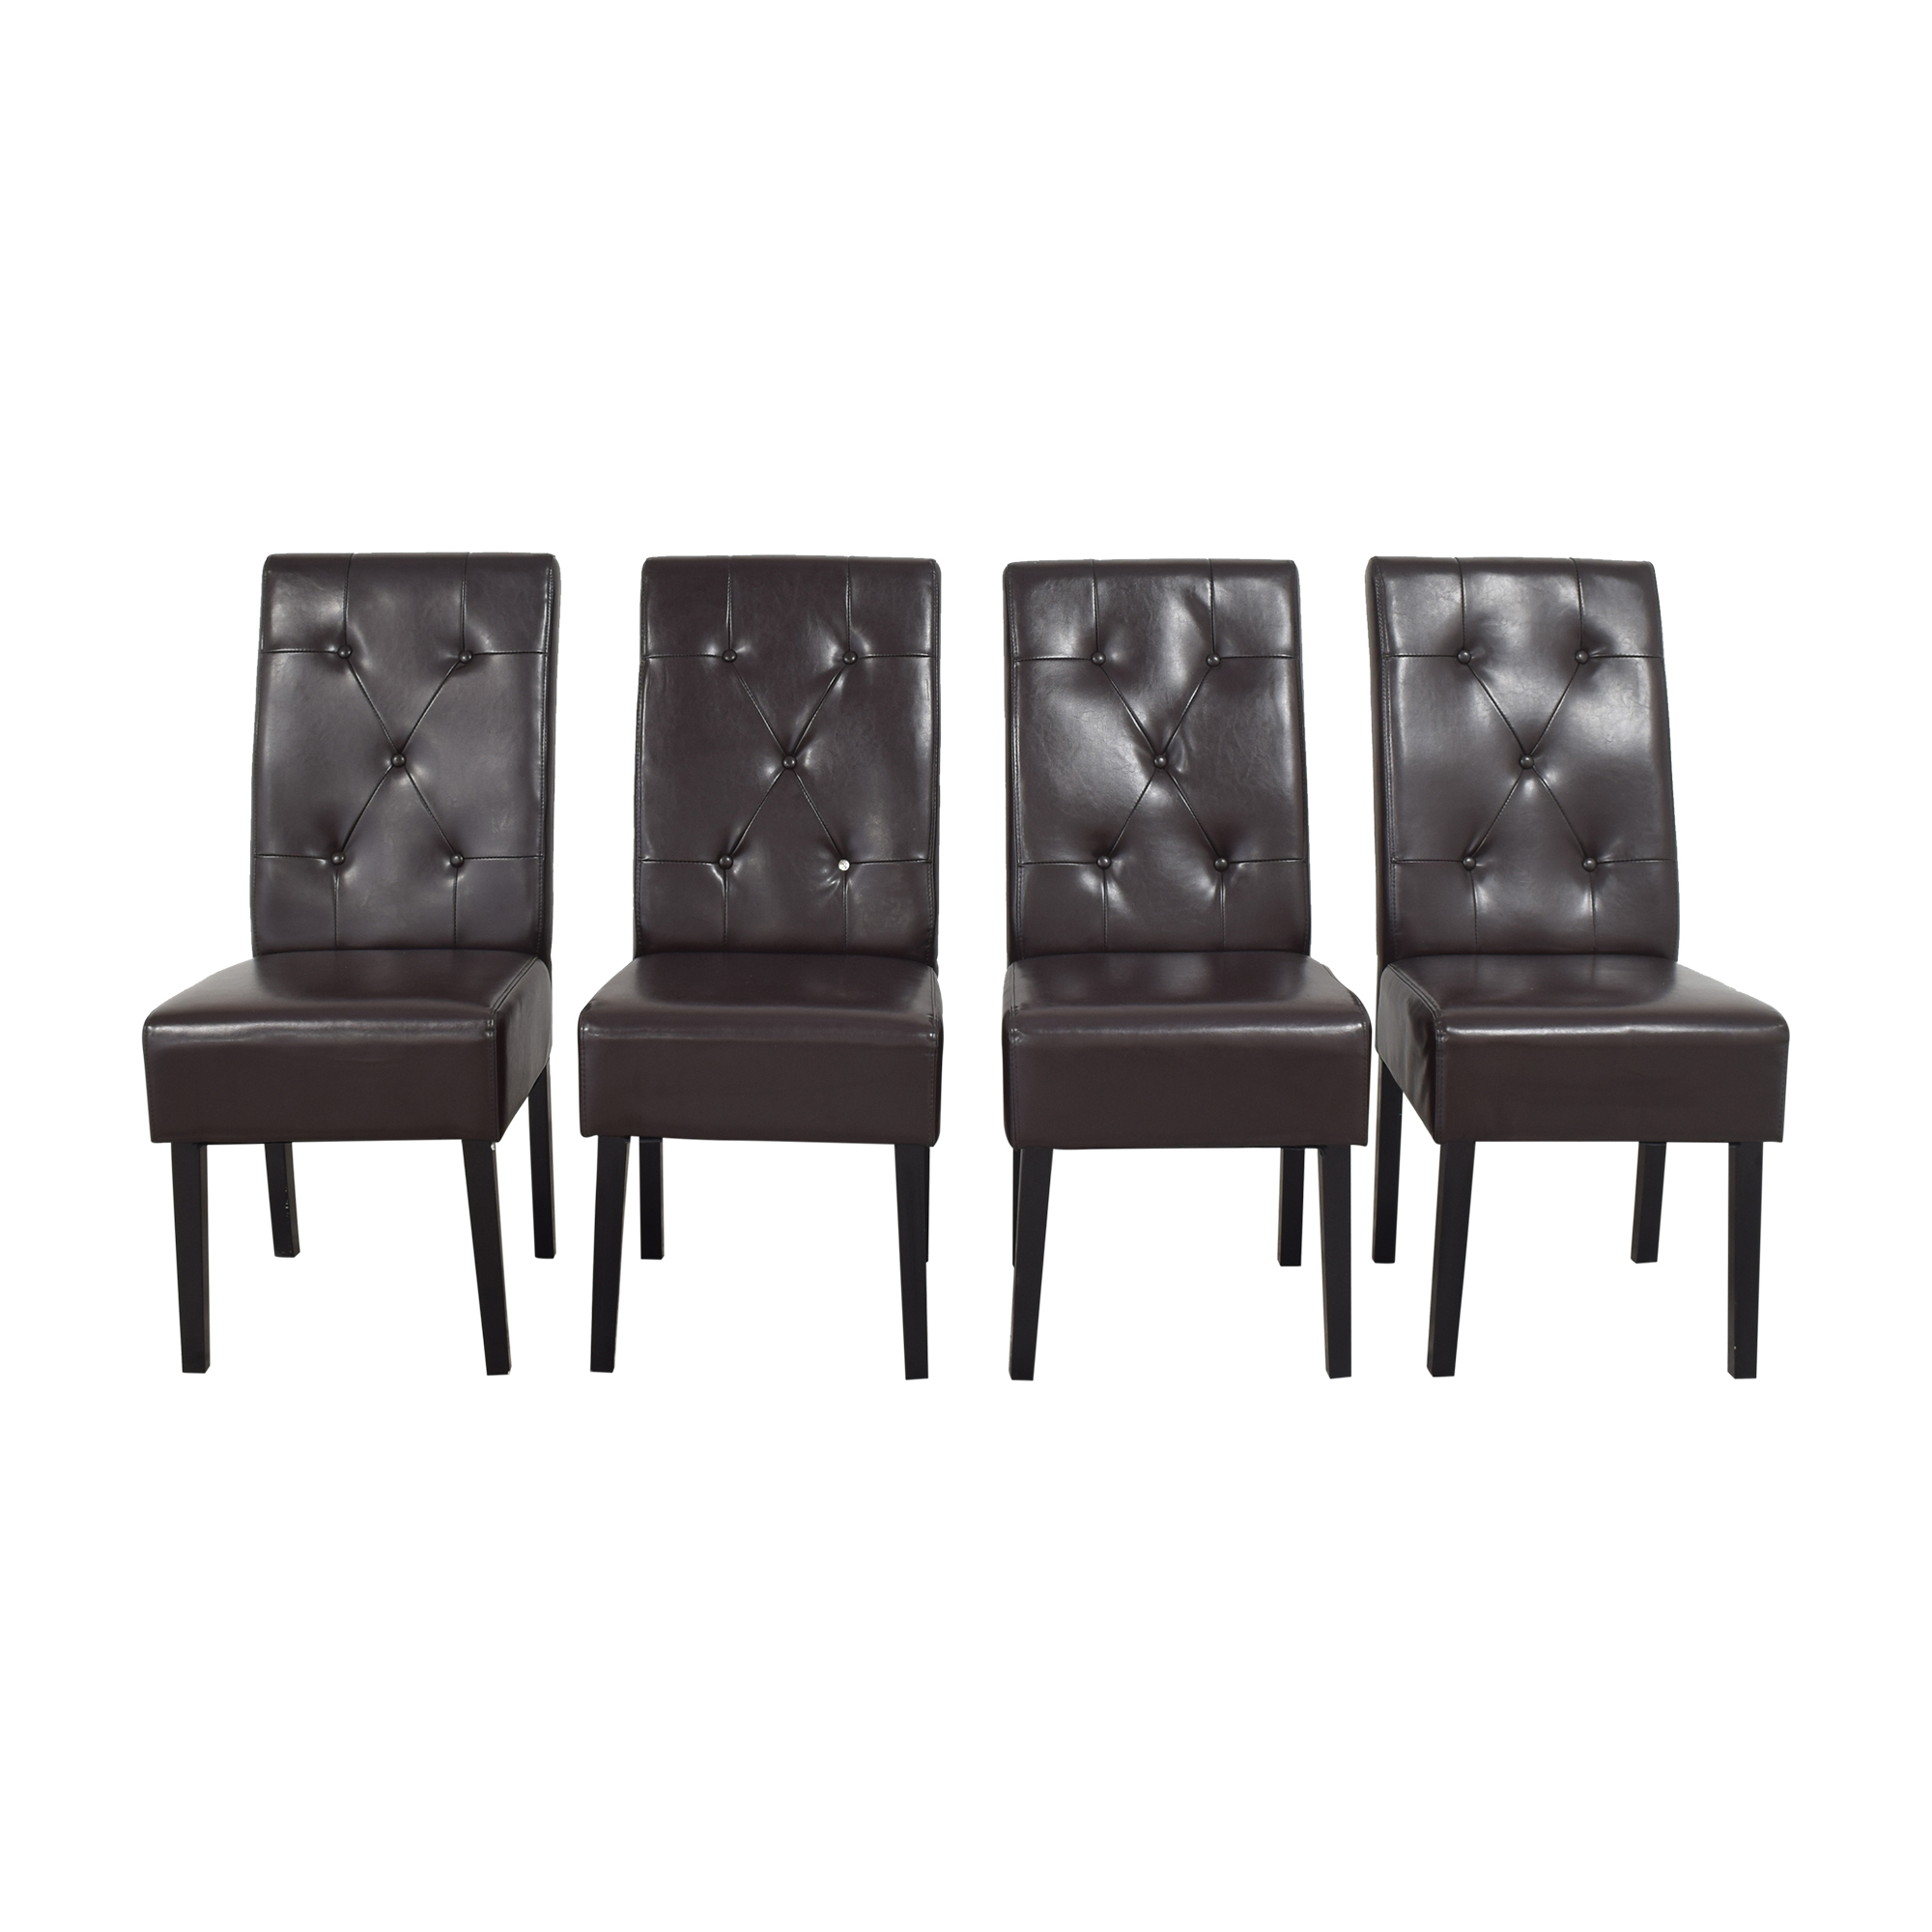 Noble House Gentry Tufted Dining Chairs / Dining Chairs